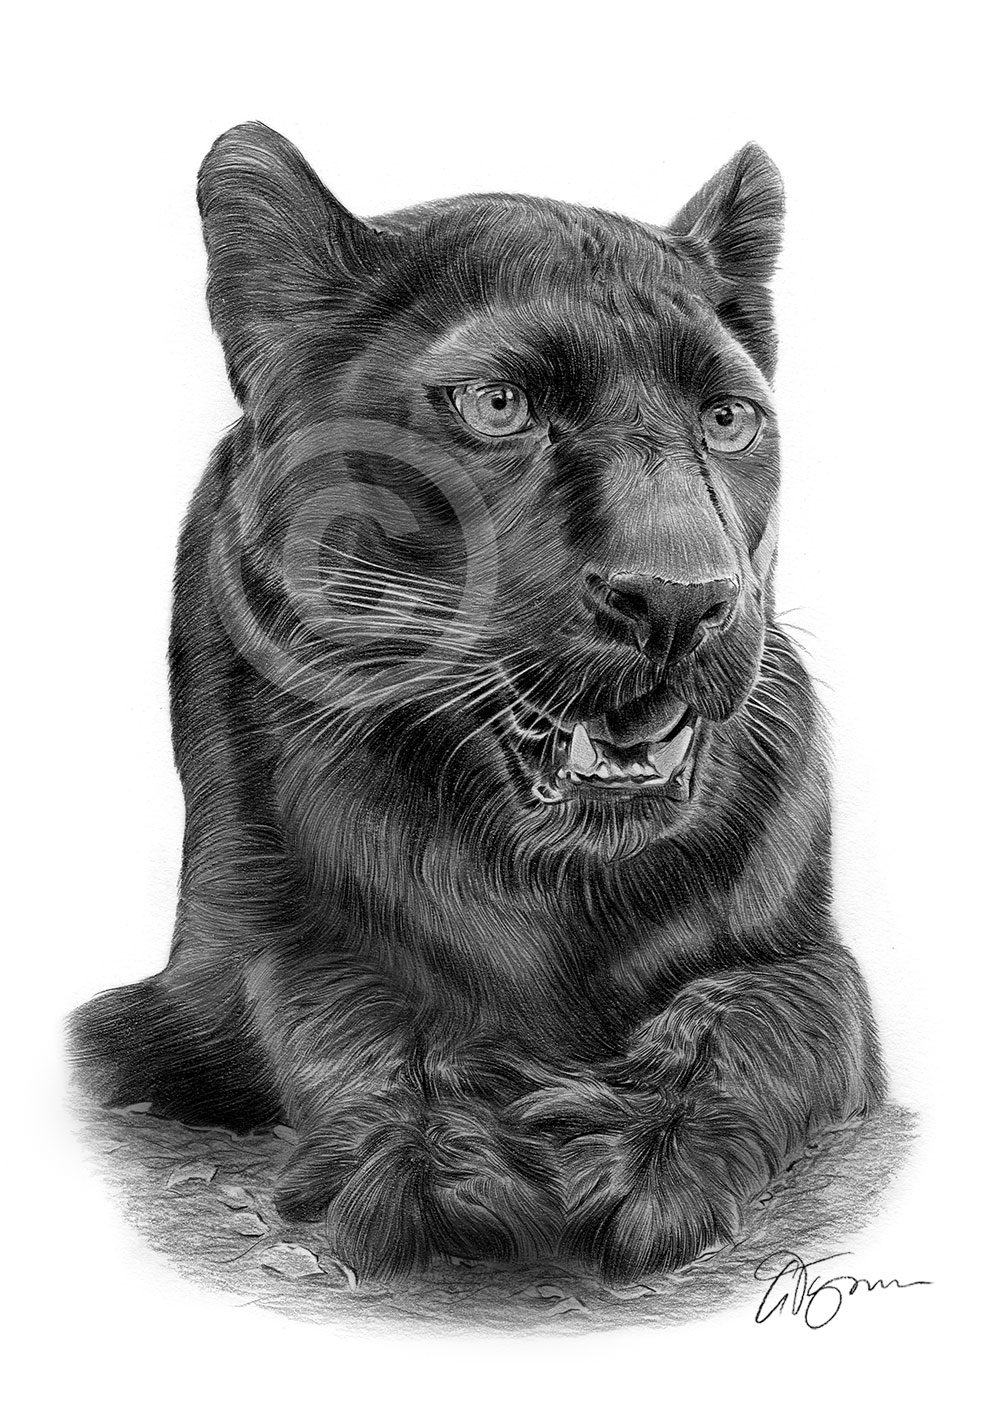 Big Cat Black Panther pencil drawing by artist Gary Tymon